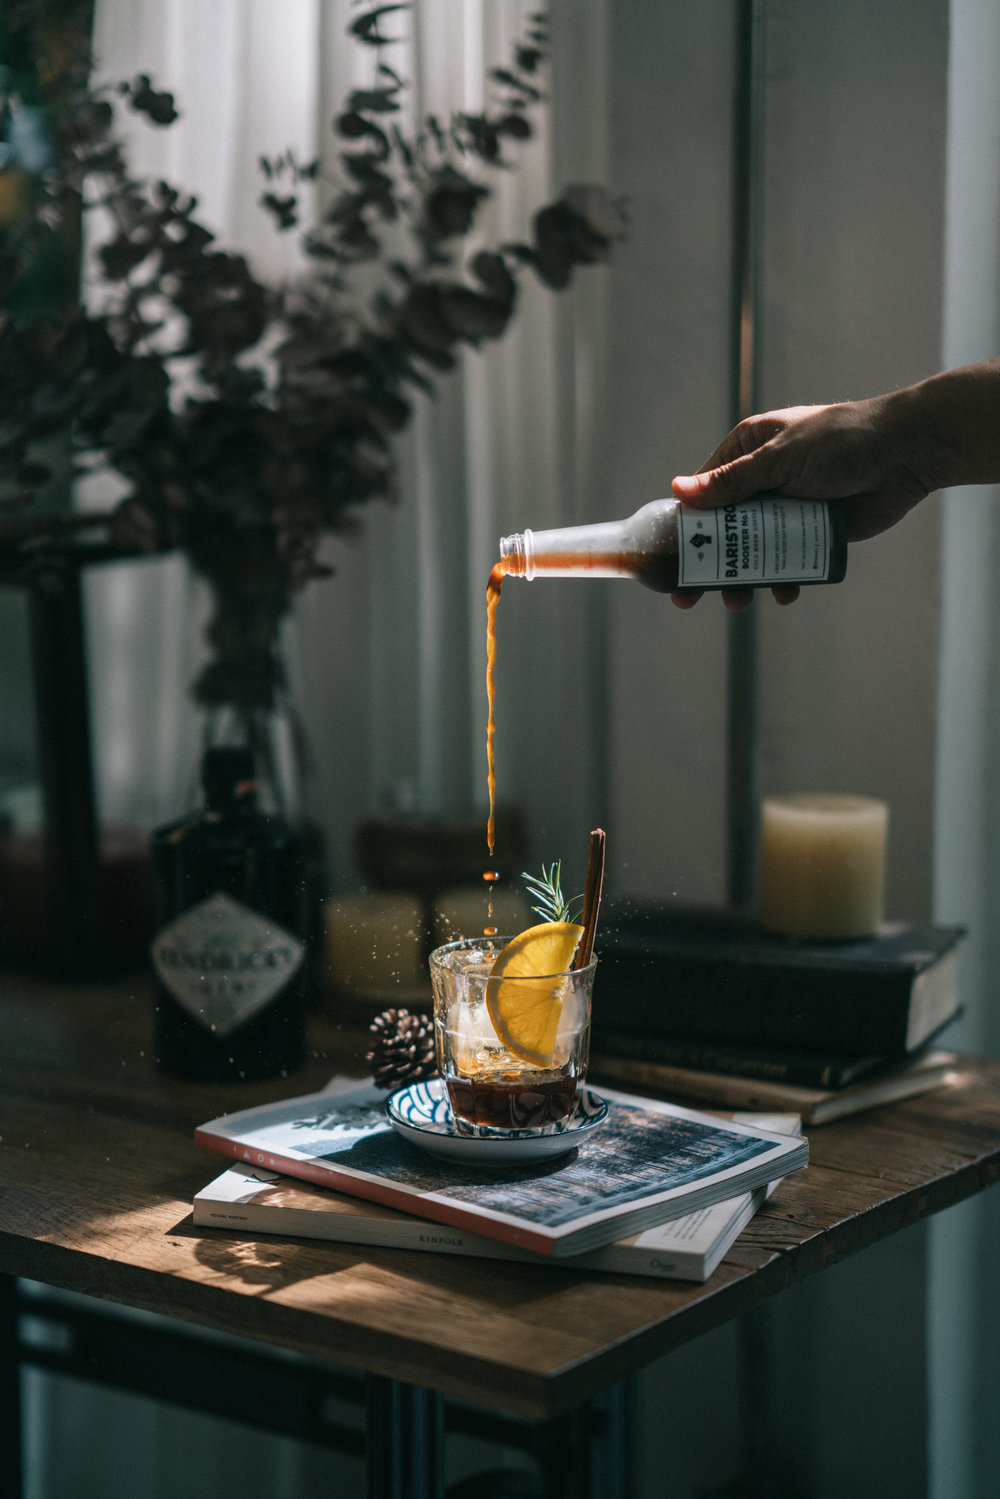 Coffee pour - food, cafe and lifestyle photography by Chiang Mai Photographer Sean Dalton.